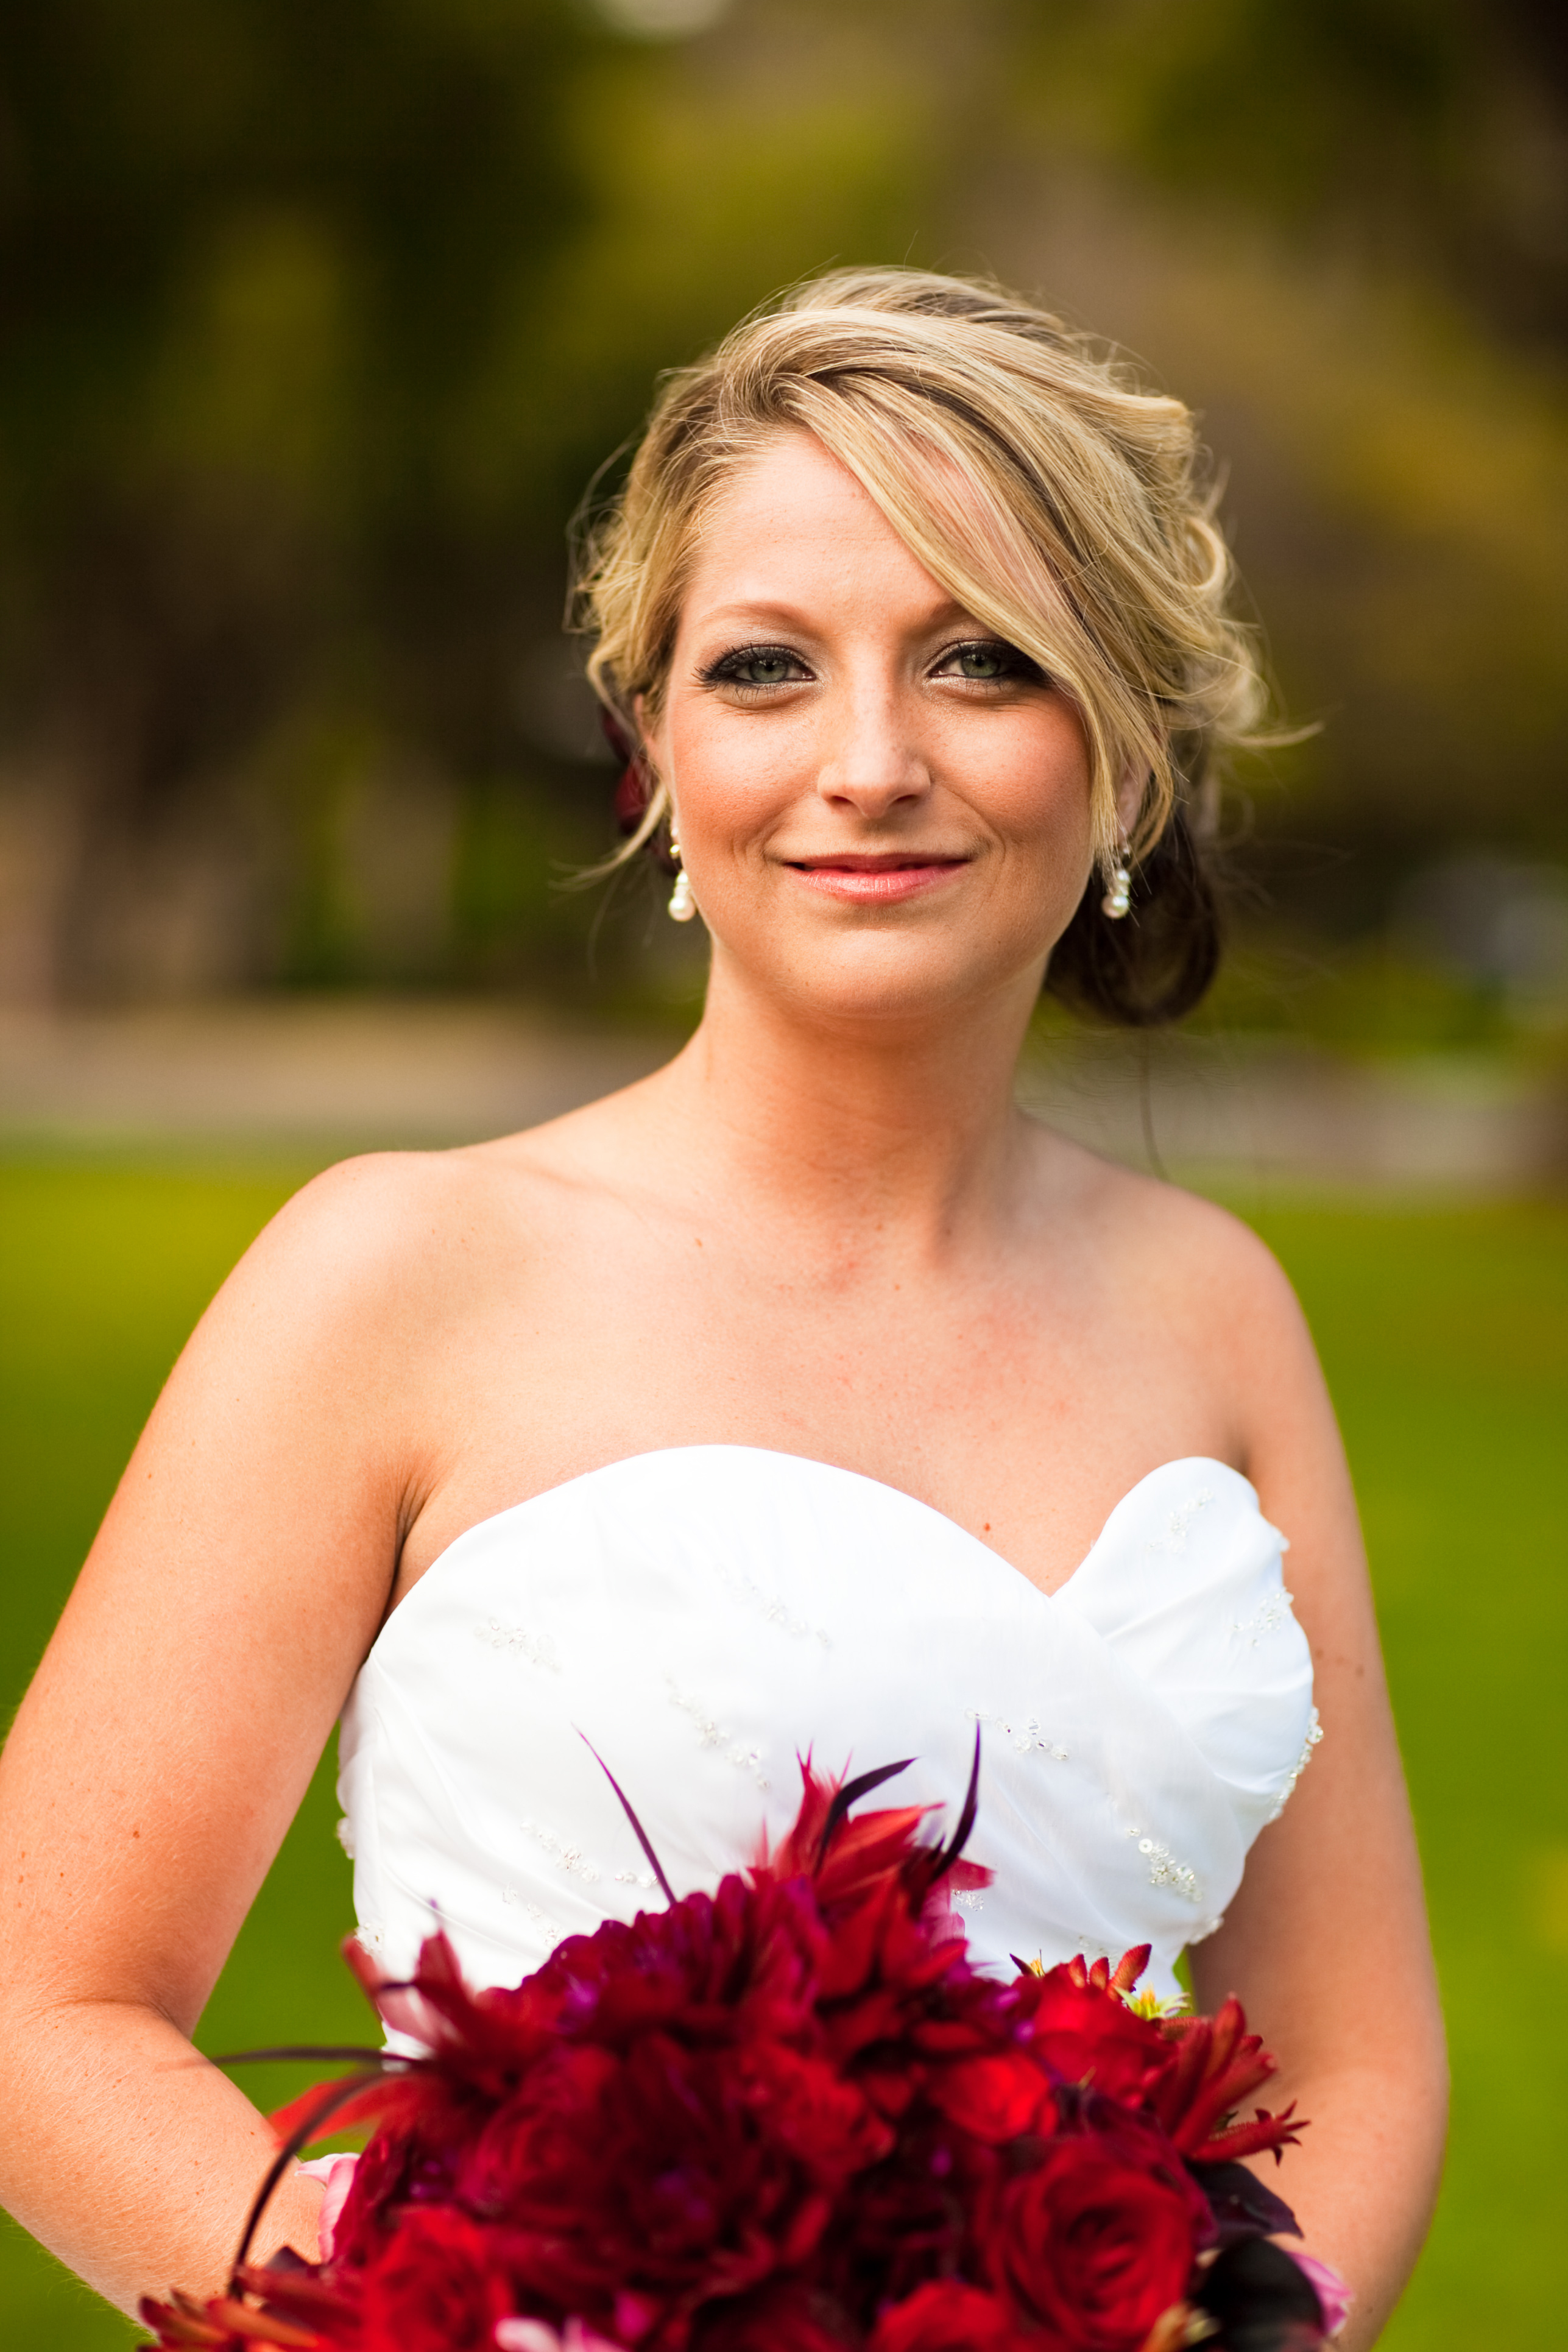 Beauty, Flowers & Decor, red, black, Feathers, Bride Bouquets, Flowers, Bouquet, Kristeen labrot events